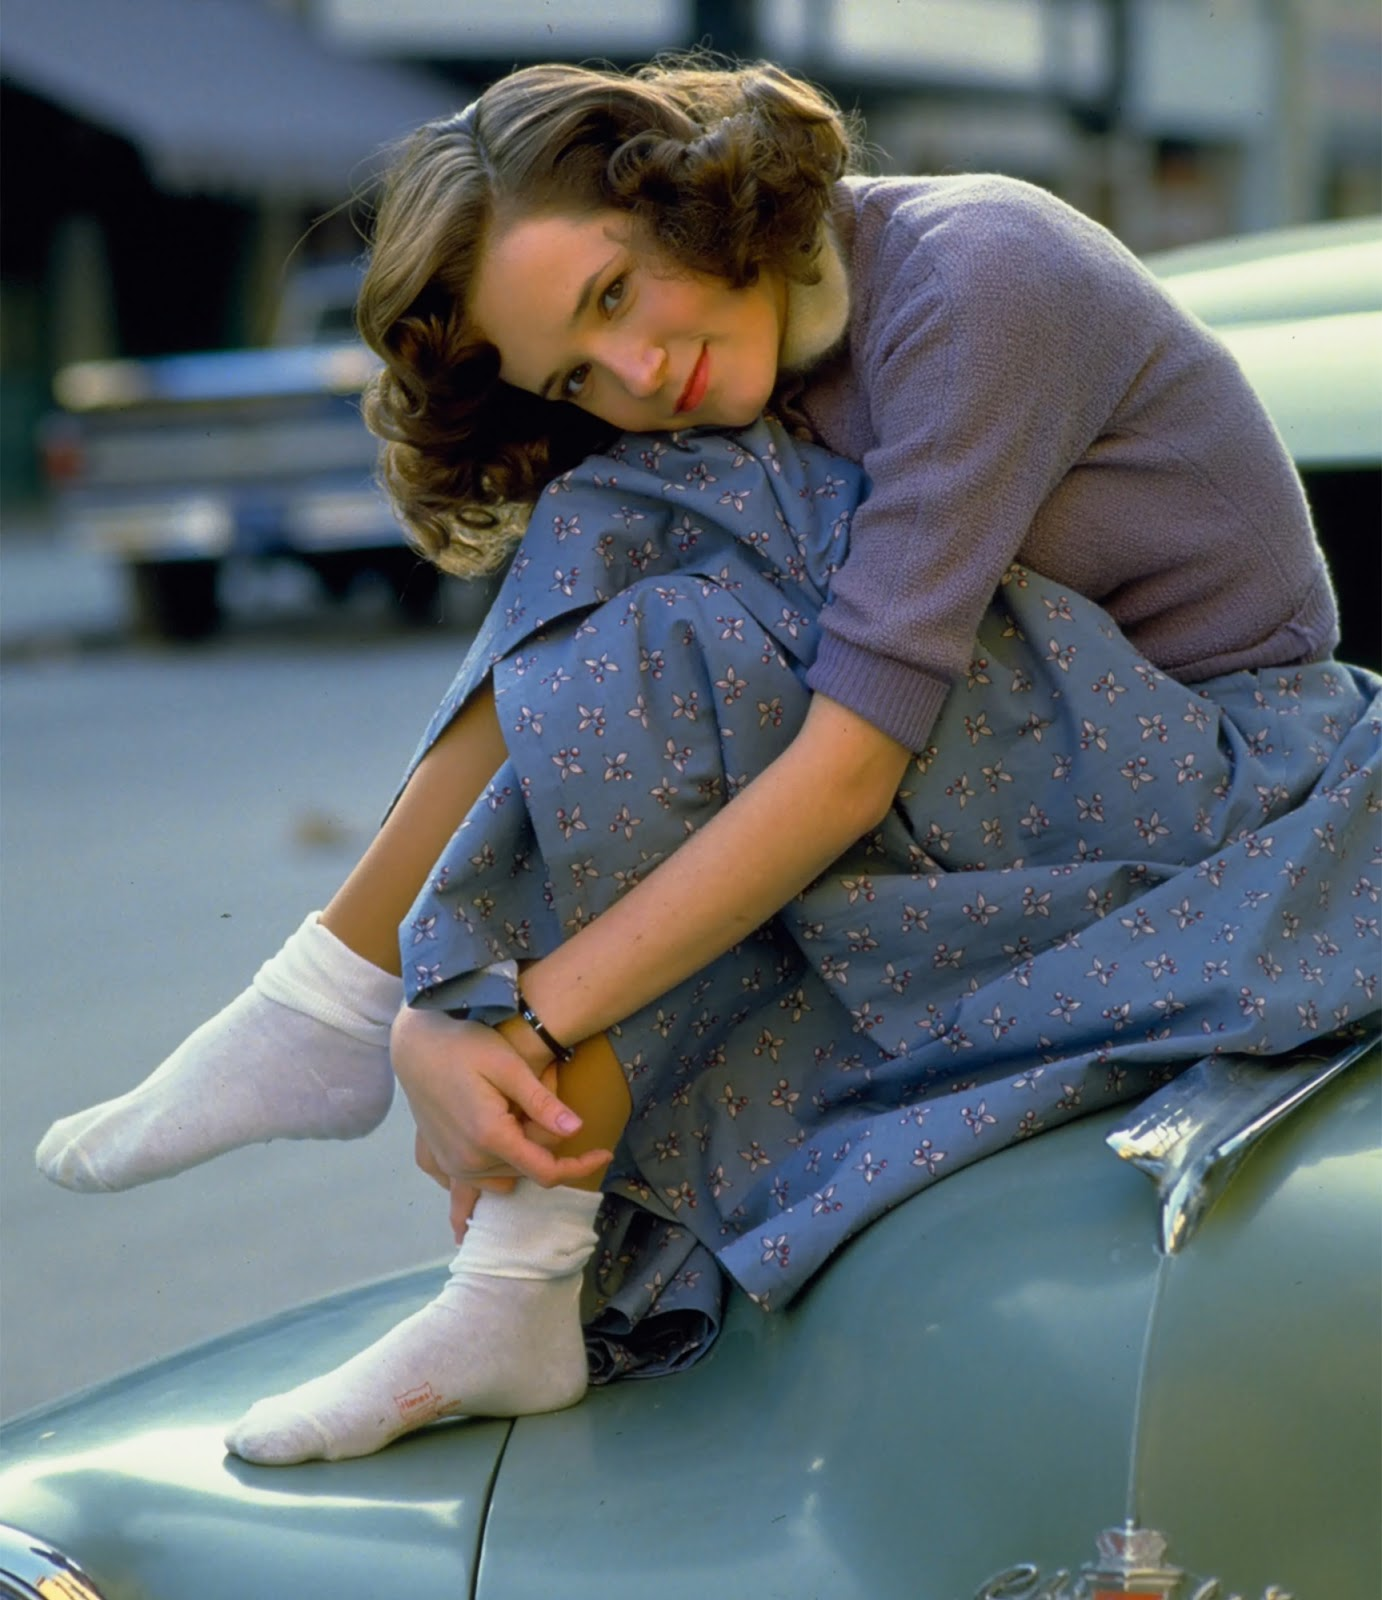 http://4.bp.blogspot.com/-QmJdkqw7Zyk/T4kQfUtRRhI/AAAAAAAAoVw/kWLa2G_vpmg/s1600/Lea_Thompson-Back_To_The_Future-001.jpg